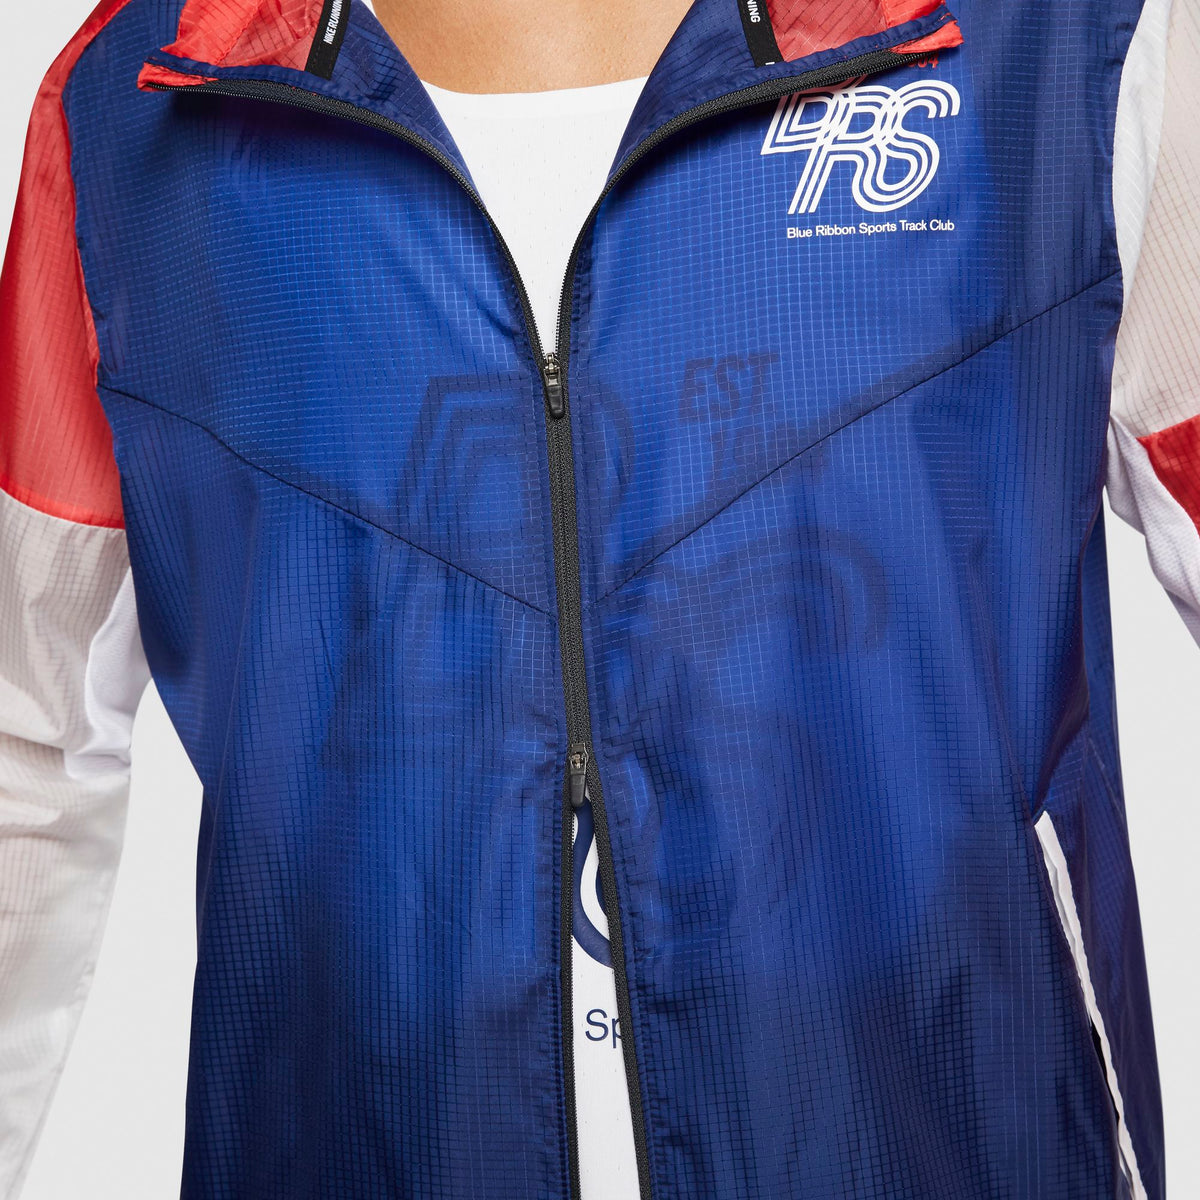 Nike Unisex Blue Ribbon Sports Running Jacket